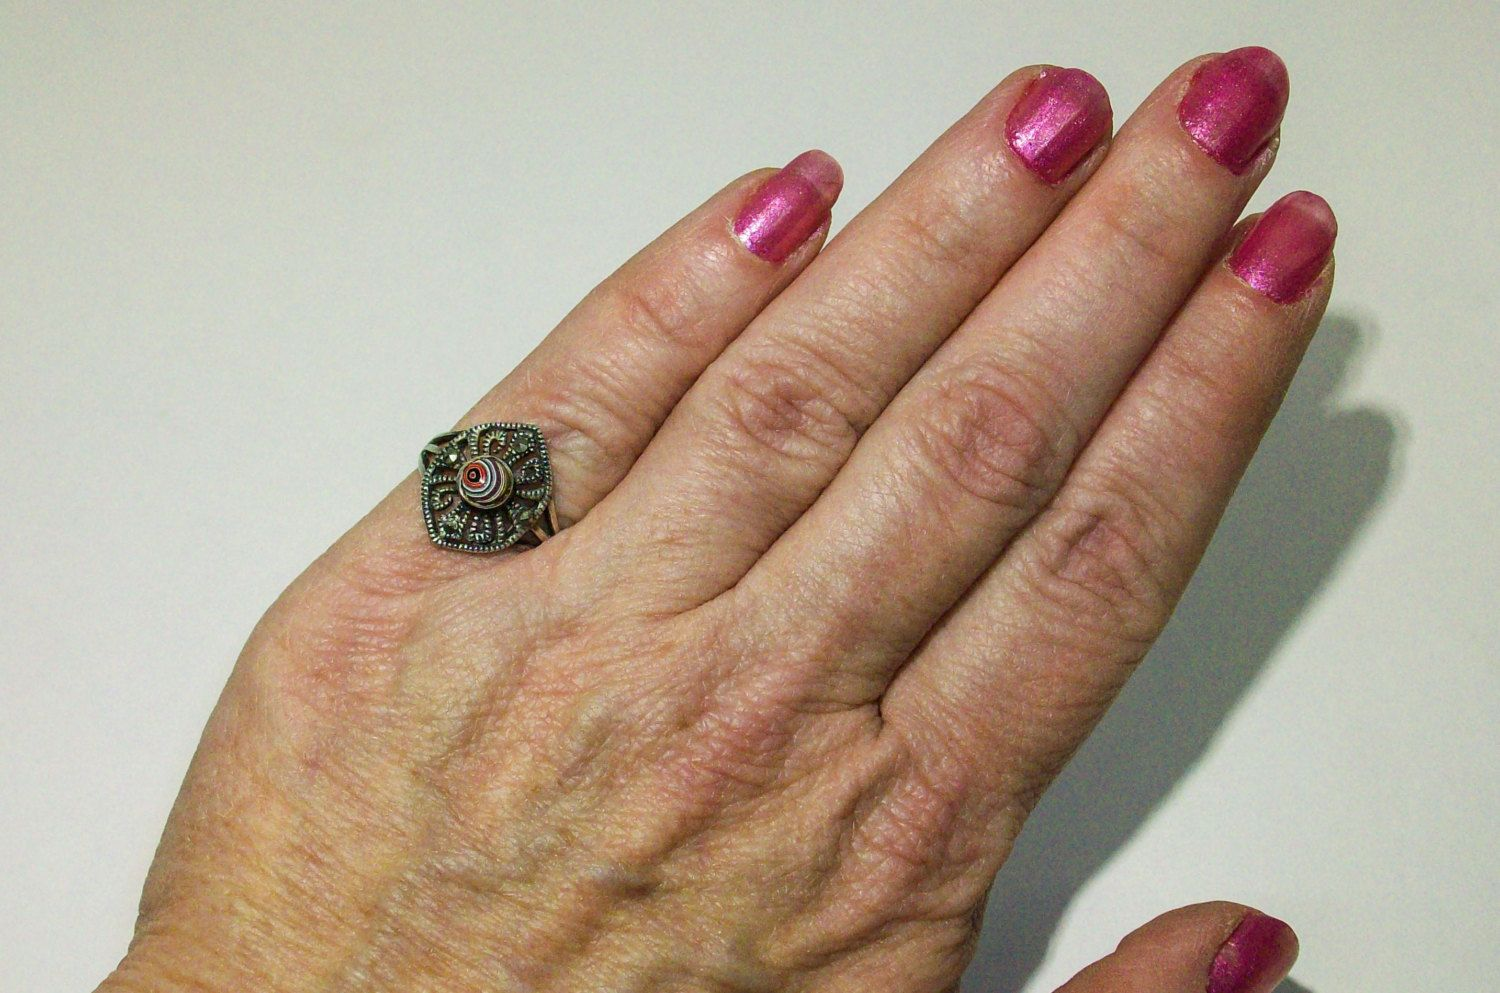 Vintage Sterling Silver Ring upcycled with a 1958-9, Detroit, Motor-City Agate, Fordite Cabochon, with Marcasite accents! ~ mrfeld ~ FR106 by mrfeld on Etsy